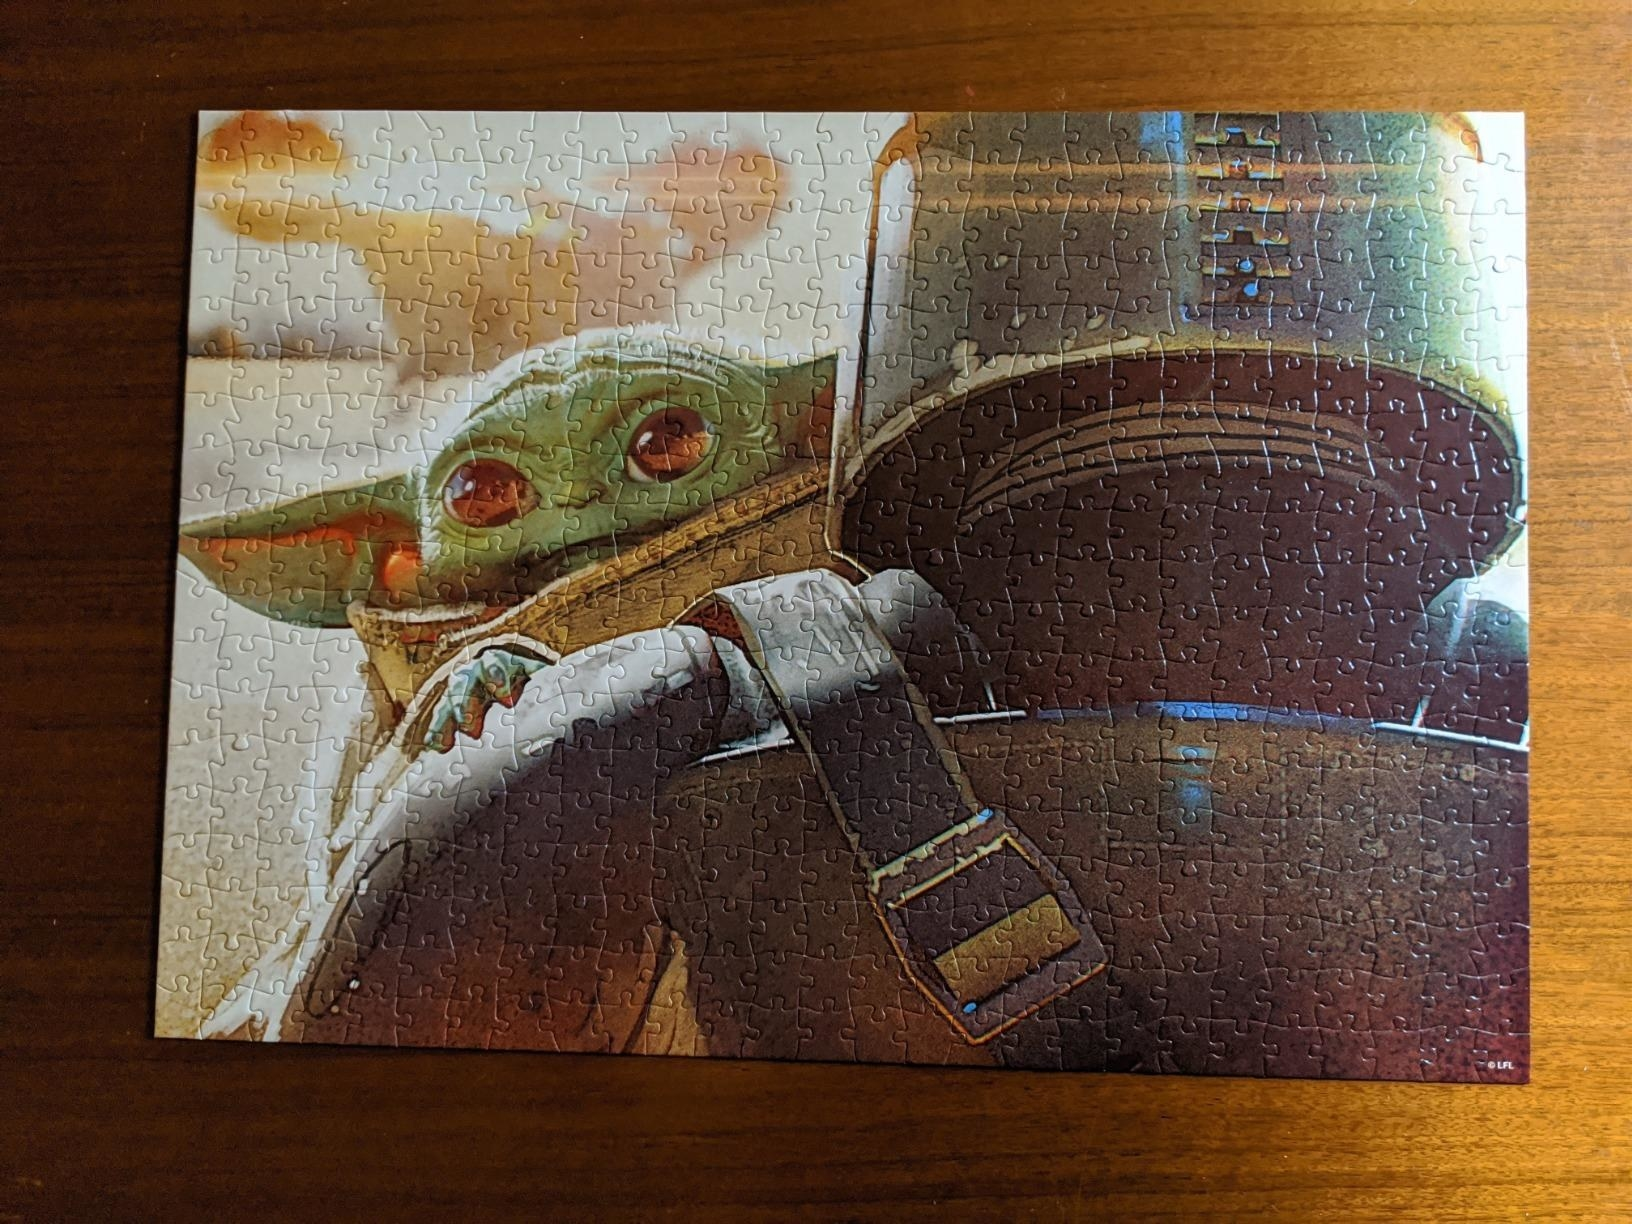 the assembled puzzle with the Mandalorian carrying Baby Yoda and Baby Yoda looking over his shoulder.